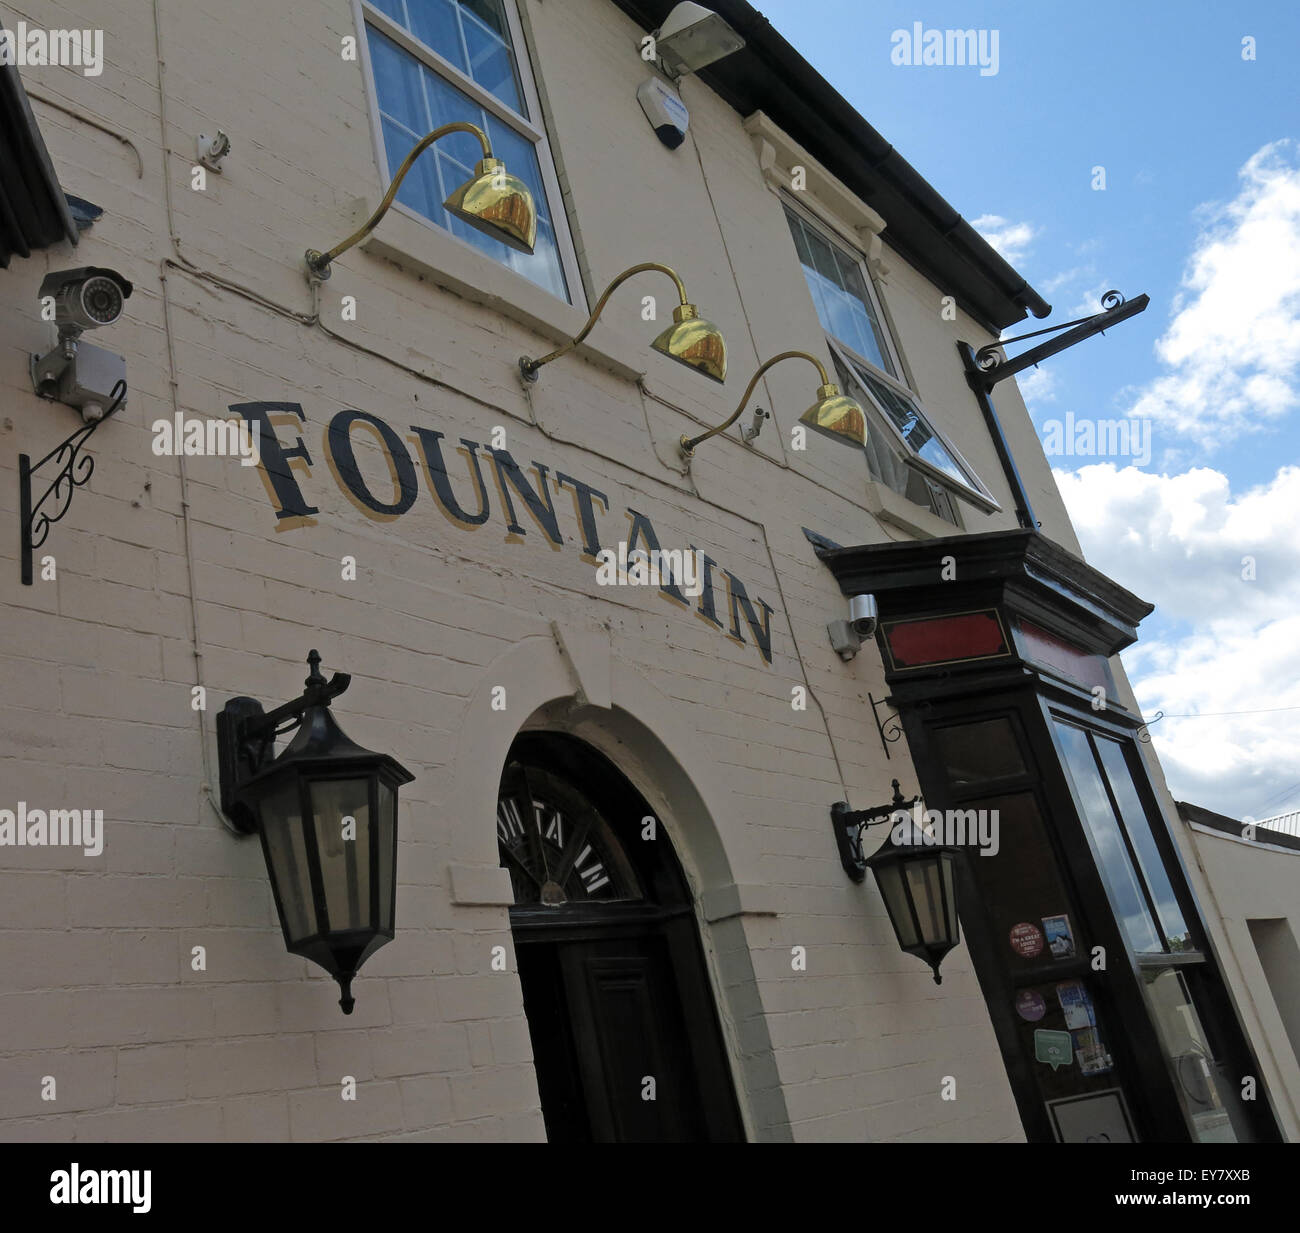 The Fountain Tavern,Backyard Brewhouse, 49 Lower Forster St, Walsall, West Midlands WS1 1XB Stock Photo